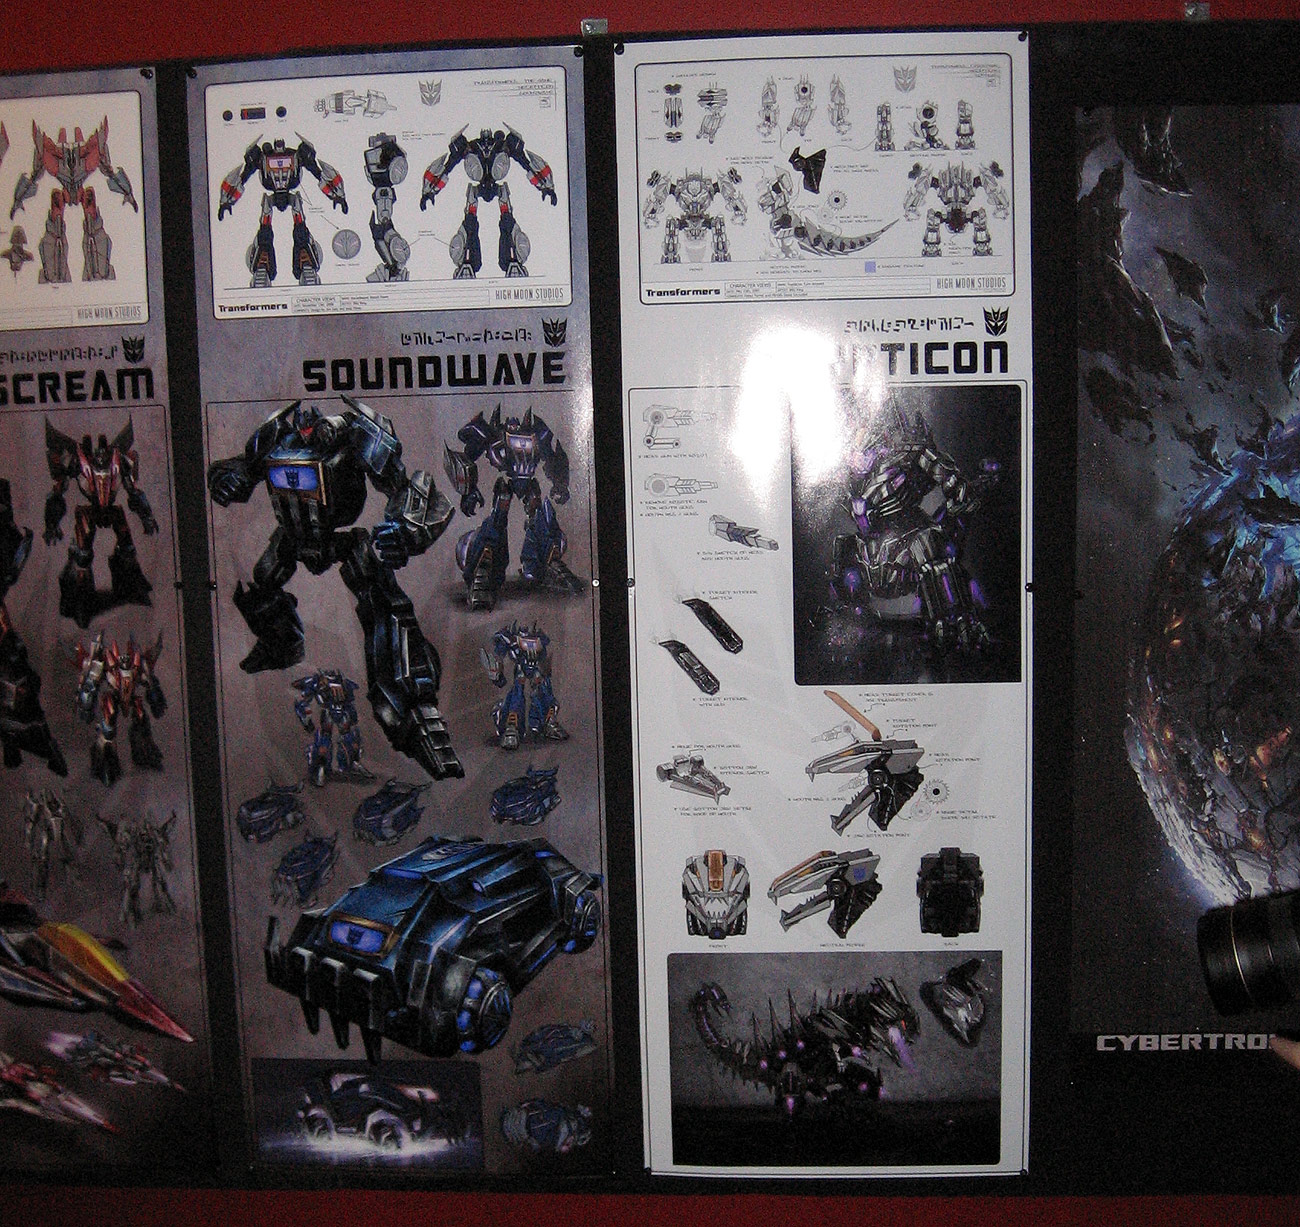 http://www.tfw2005.com/transformers-news/attach/4/5/1/9/3/war_for_cybertron_018_1272873600_thumb.jpg